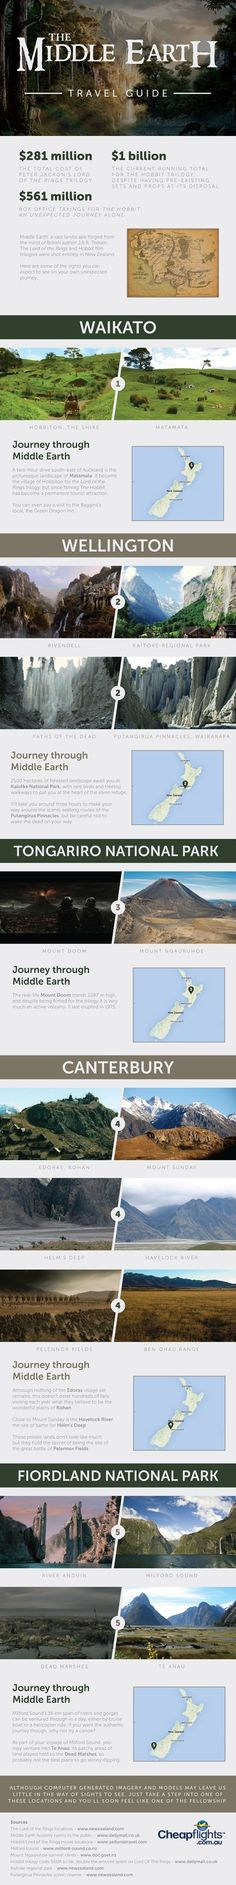 The Middle Earth Travel Guide Infographic. For a FREE study New Zealand consultation, contact EIG today at: info@imelite.org